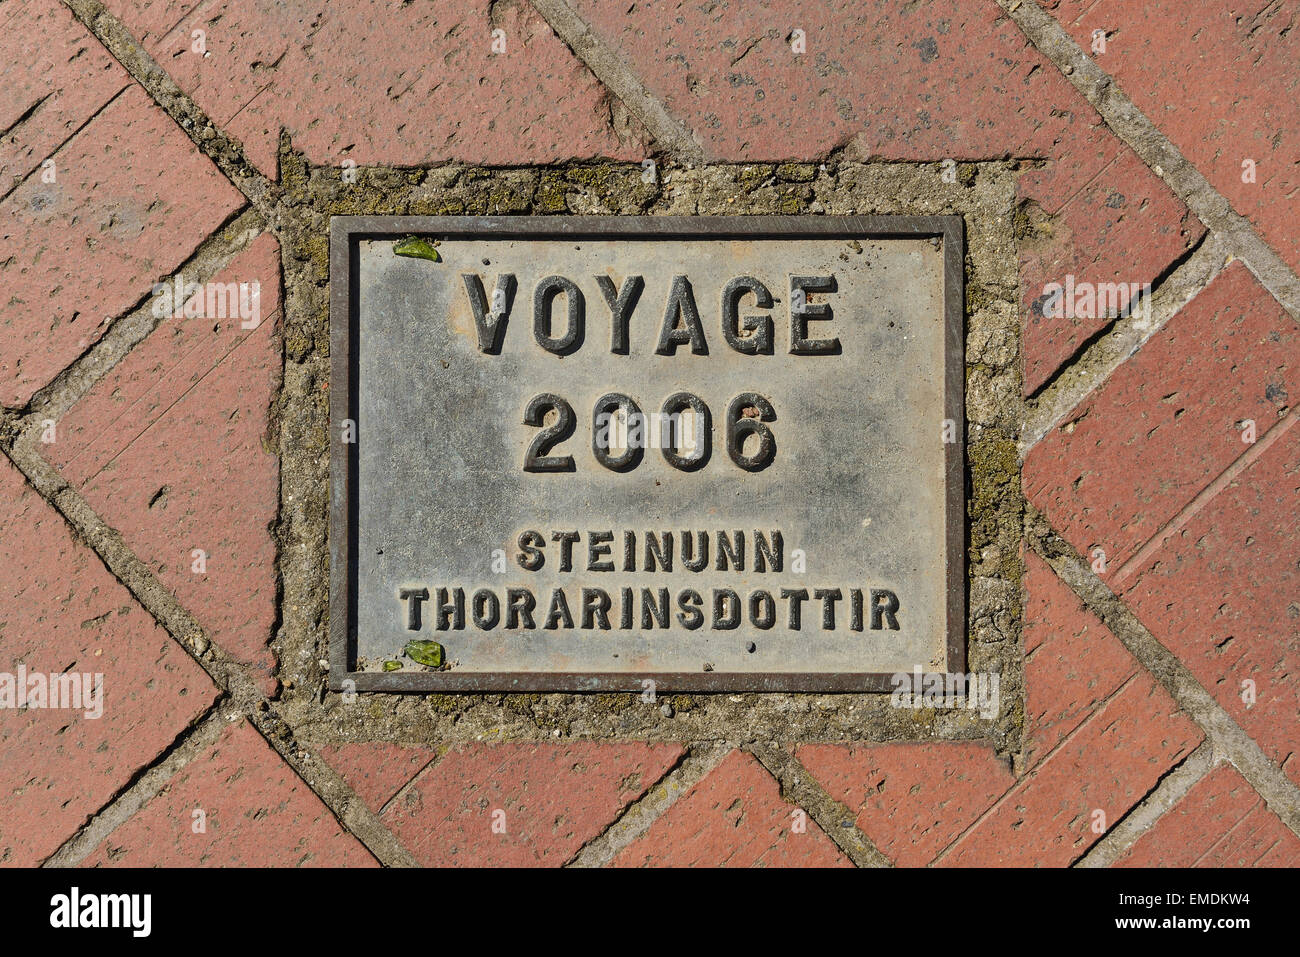 The metal plaque for the Voyage statue that overlooks the Humber Estuary in Hull UK - Stock Image